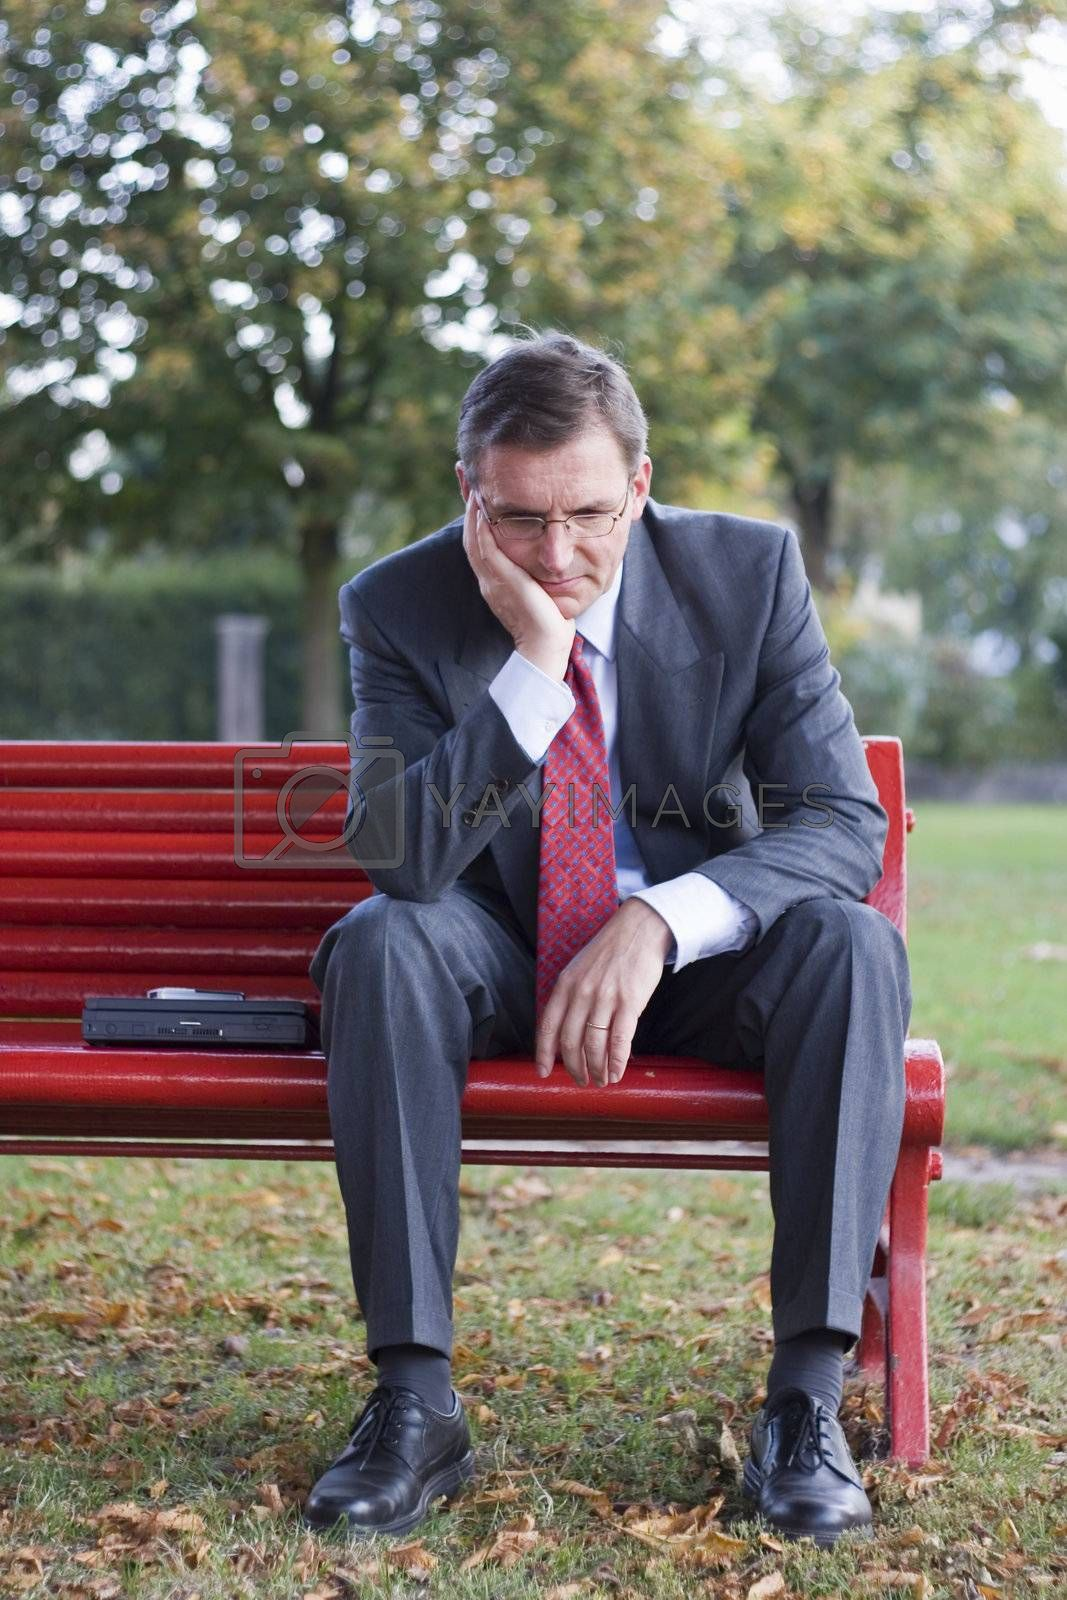 Worried businessman sitting on a red park bench